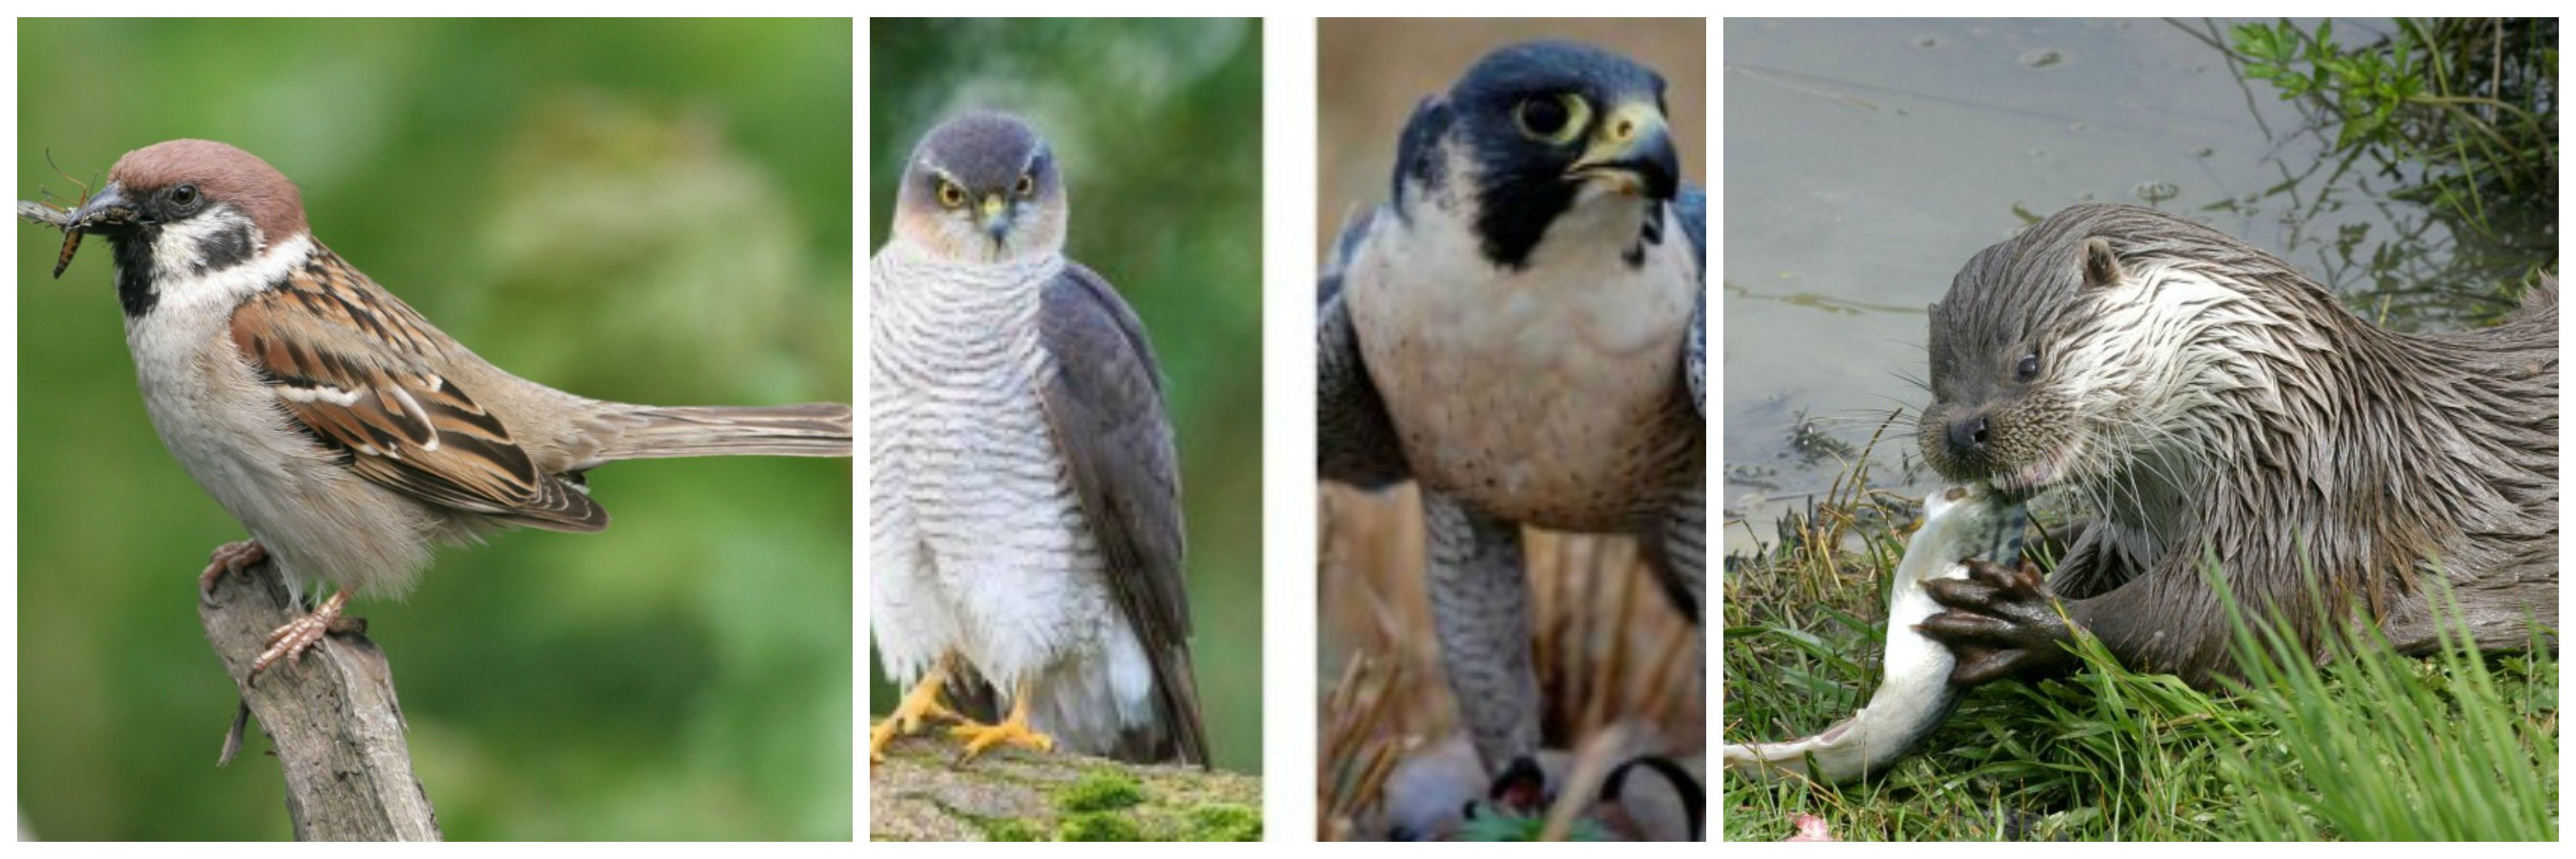 Tree sparrow (C Mike Snelle), Sparrowhawk, Peregrine falcon and Otter (C SWT)